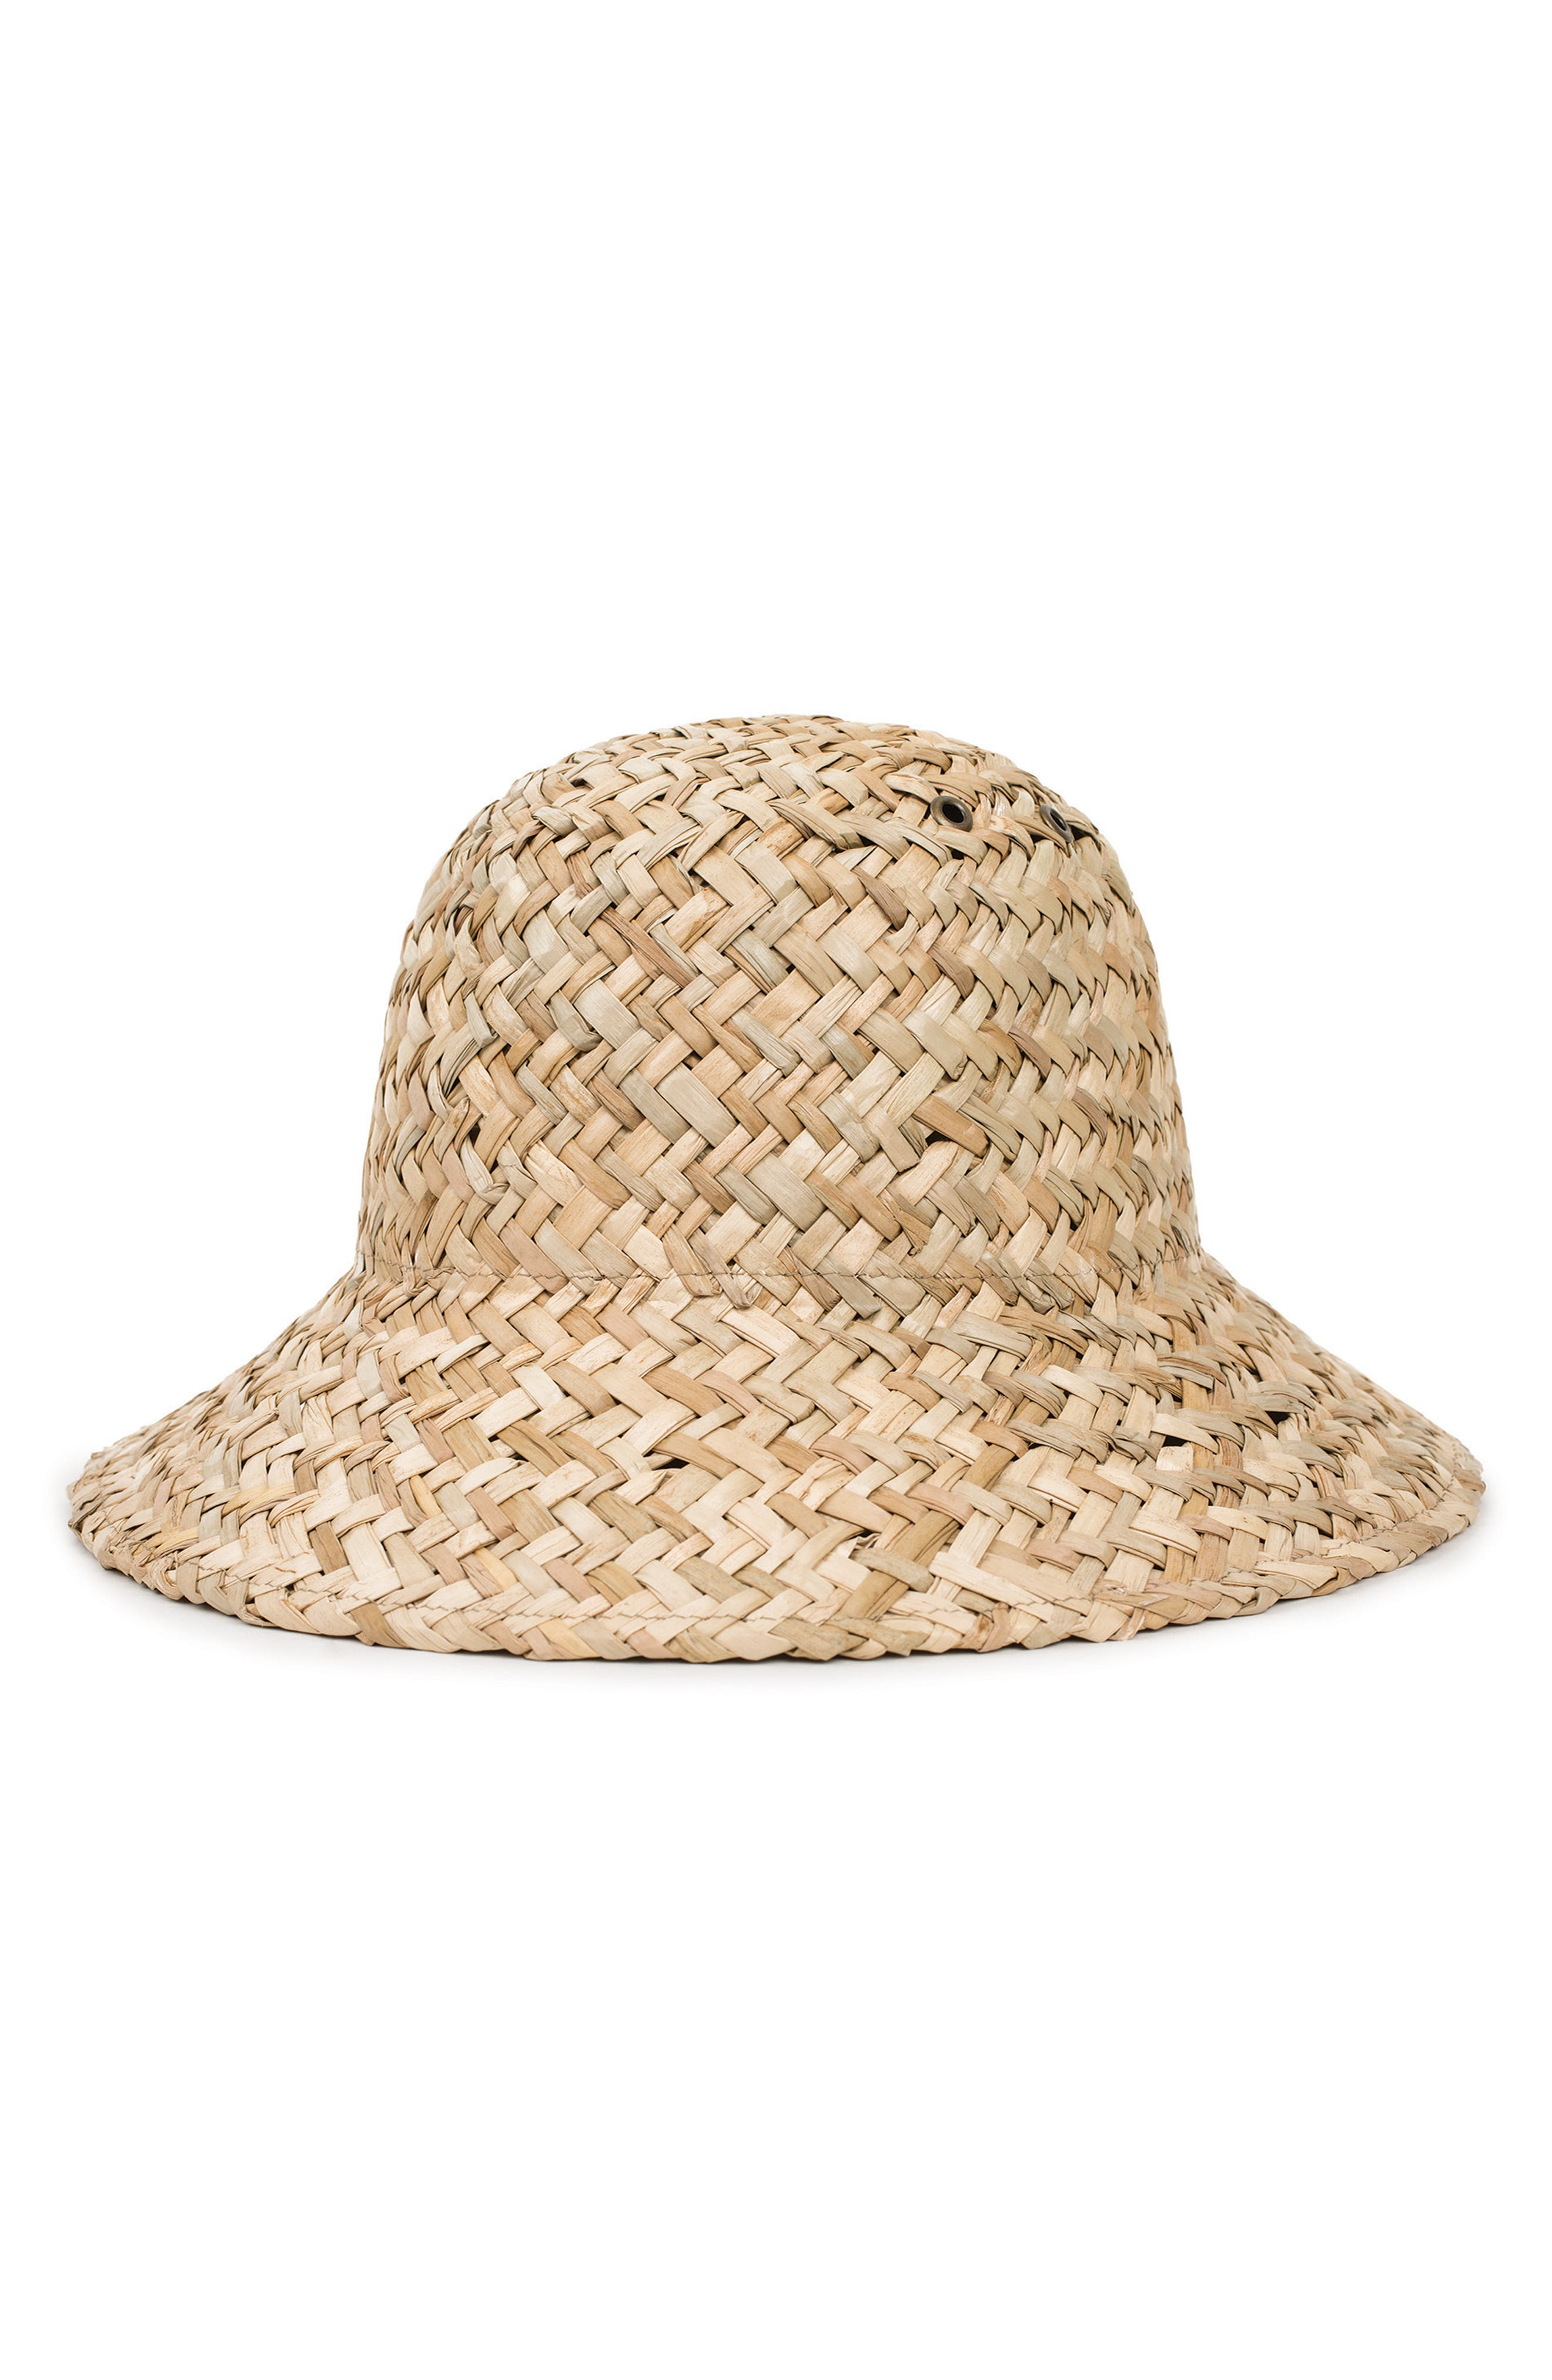 Kennedy Straw Hat,                         Main,                         color, DARK TAN